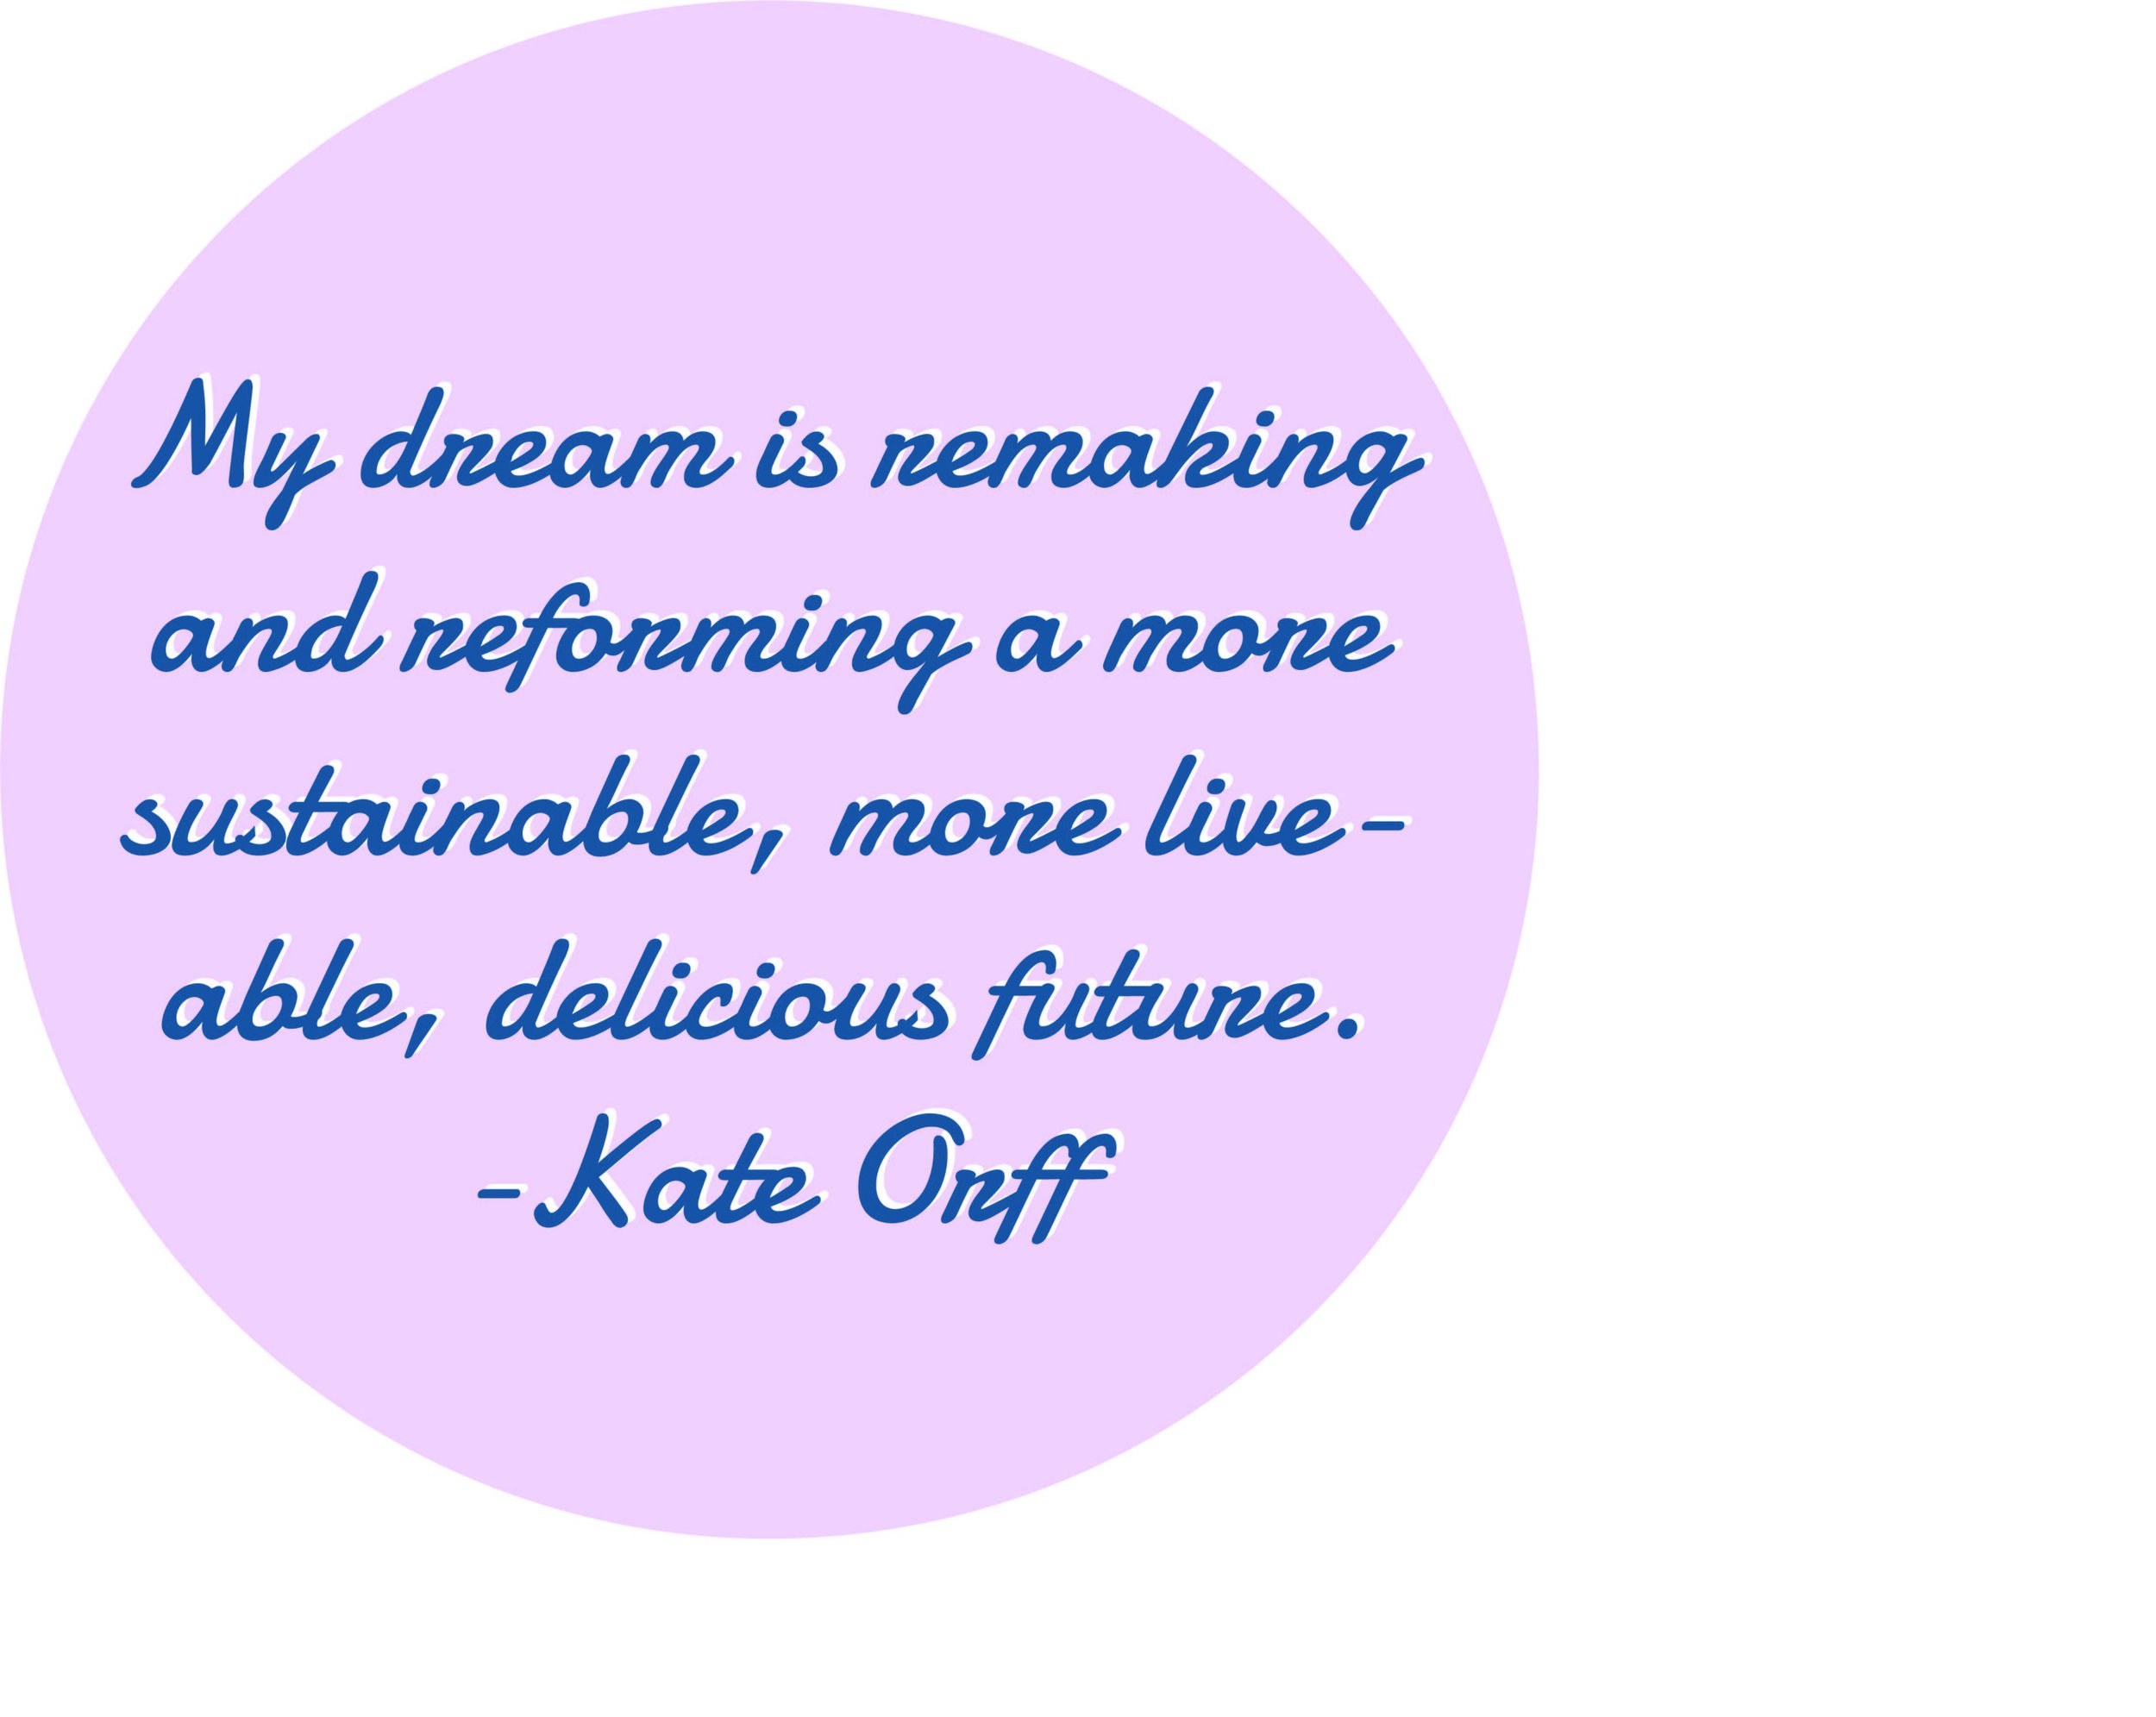 Kate Orff my dream quote 1.jpg